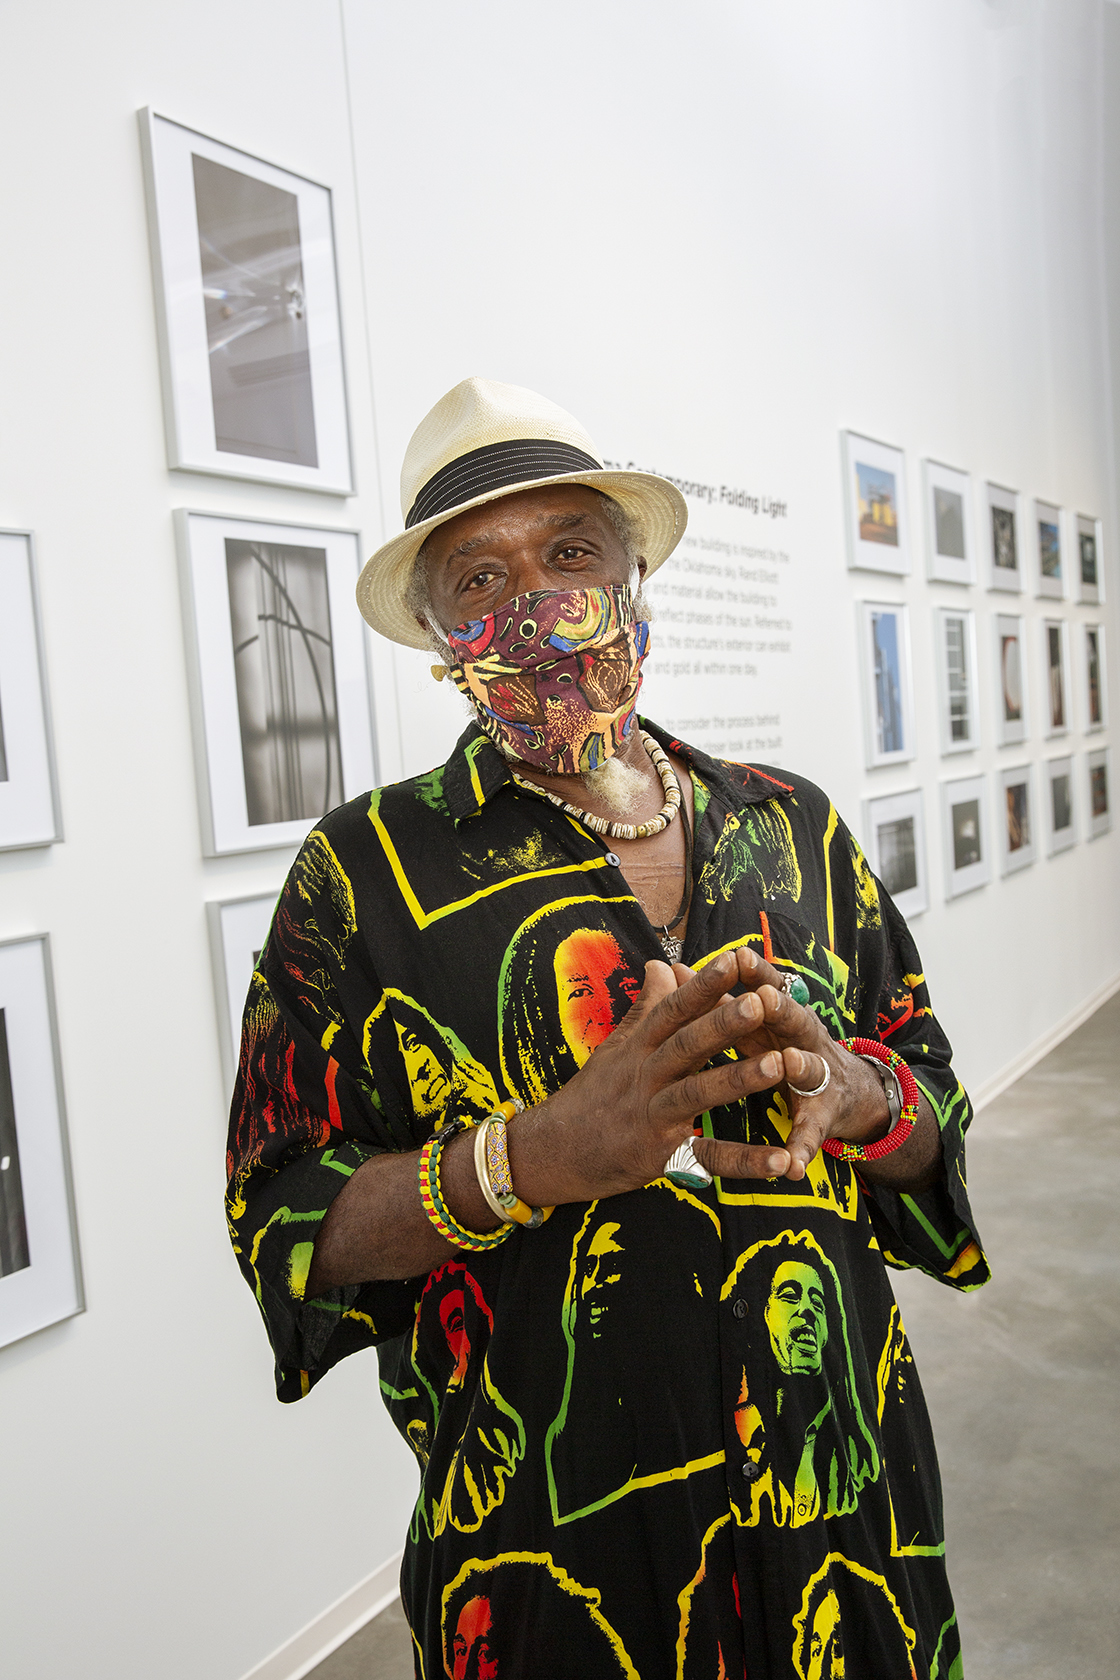 A man wearing a face mask and a black shirt with brightly colored lines stands in white gallery with numerous frames works